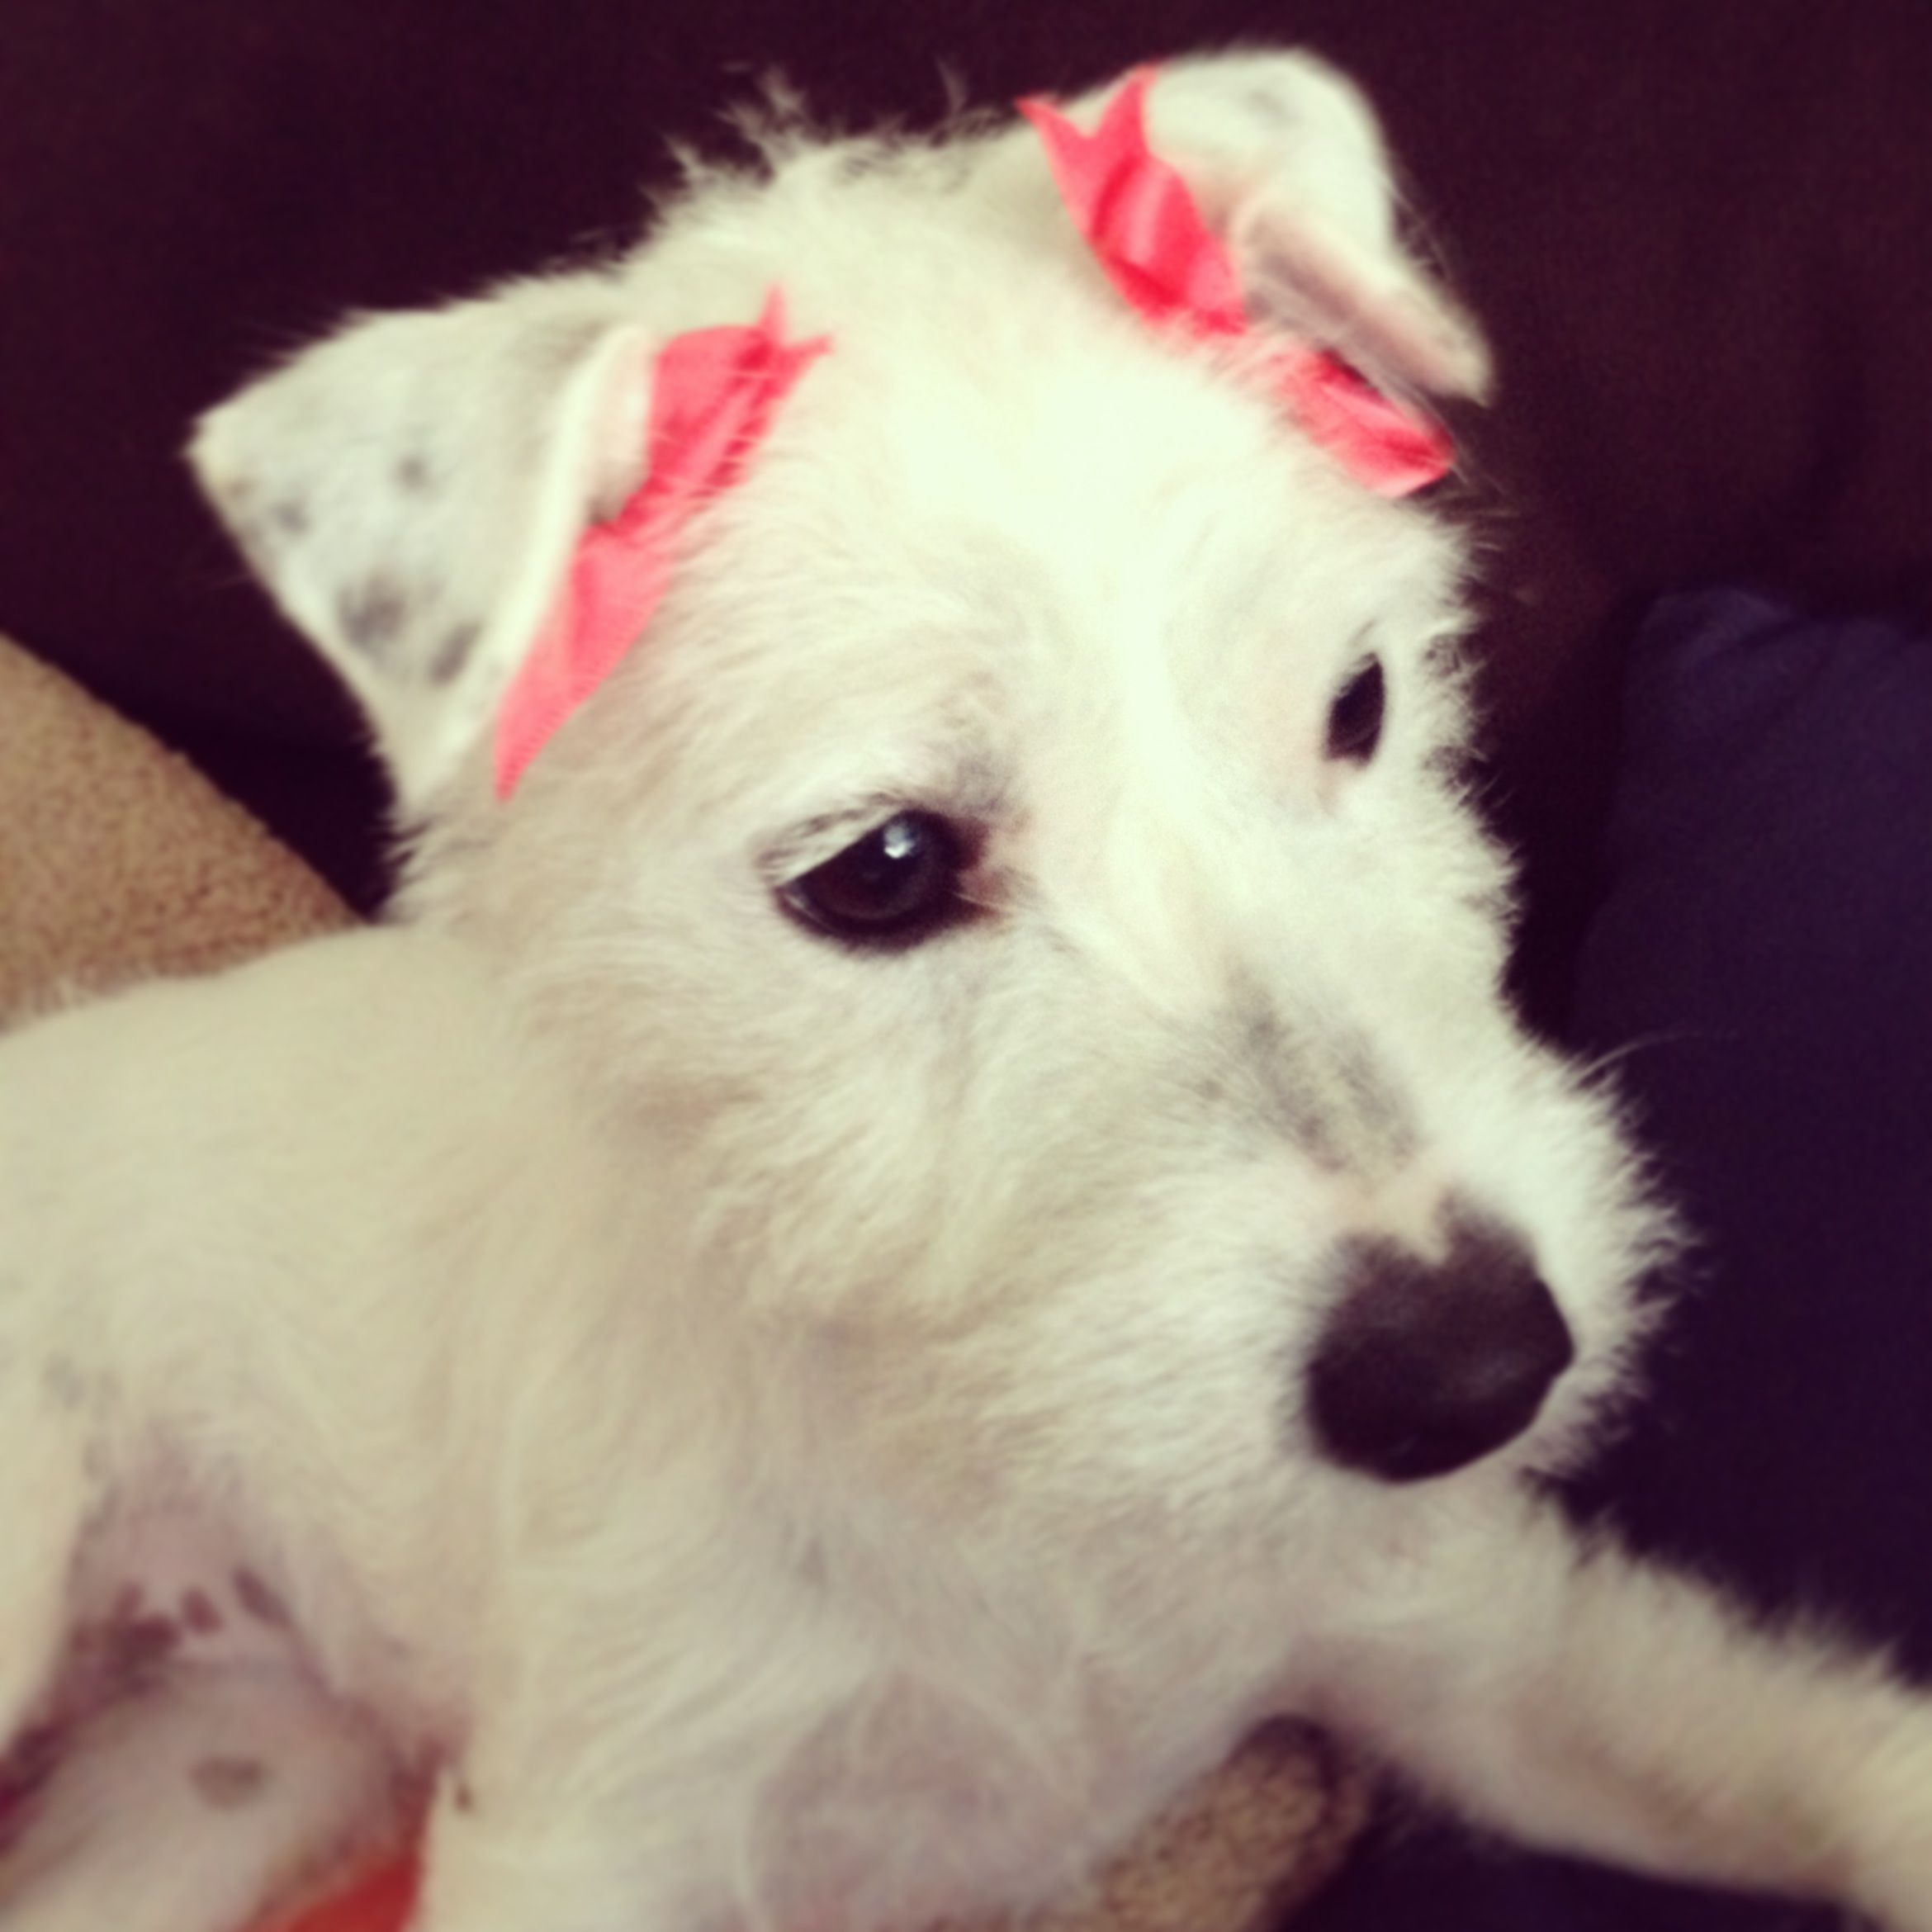 Pippa with bows!   #pippa #jrt #jackrussell